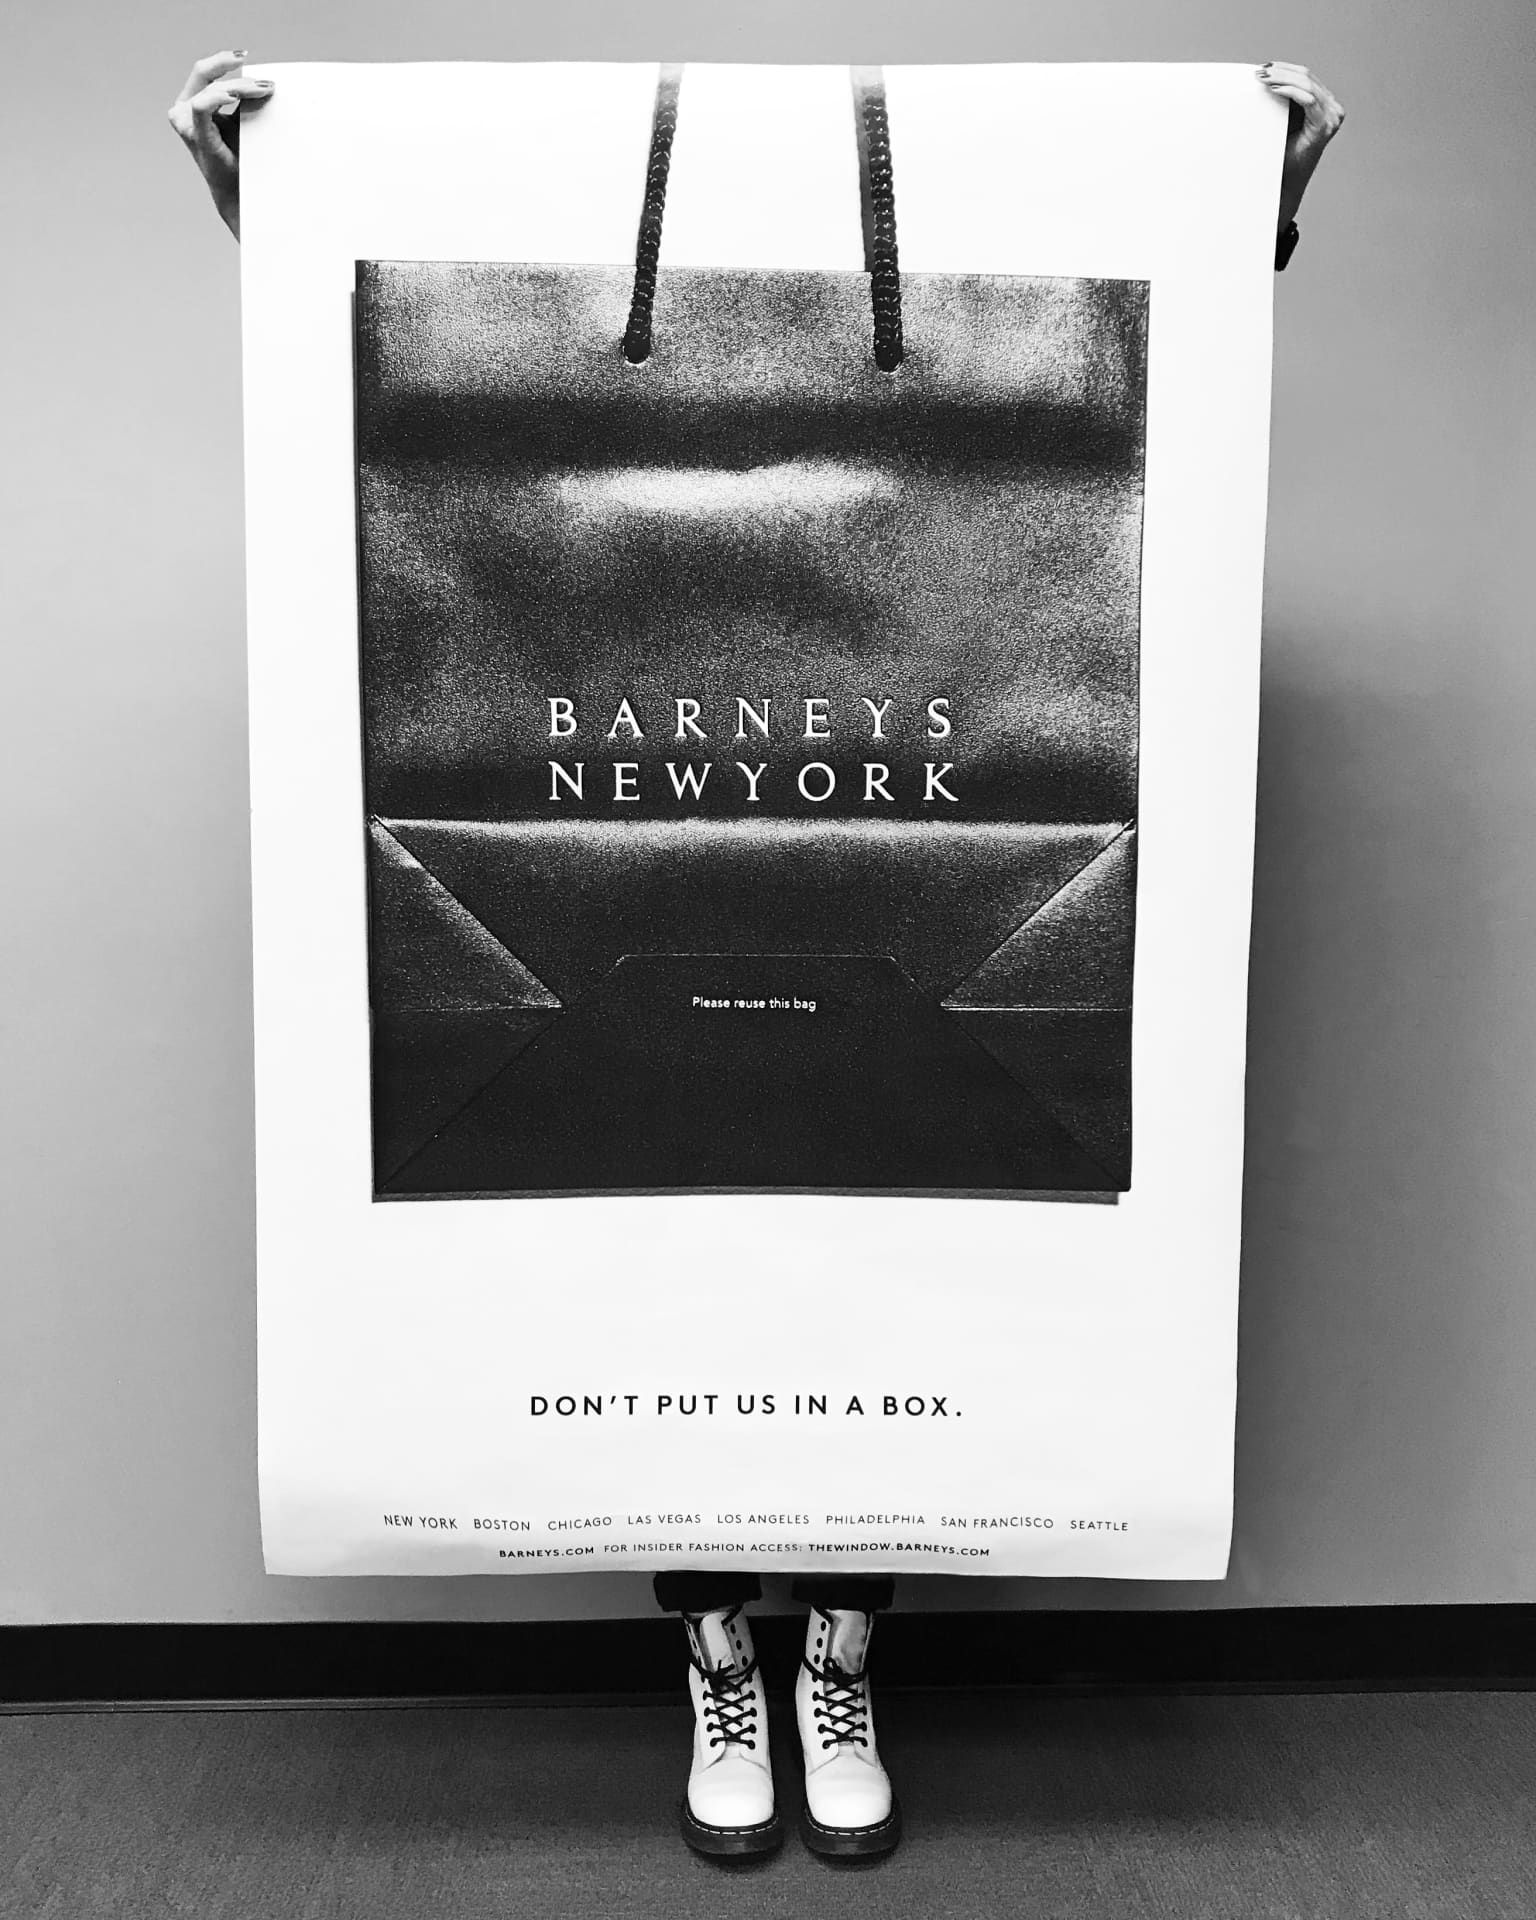 "Barneys New York ""Don't put us In a box"" Advertising Campaign"